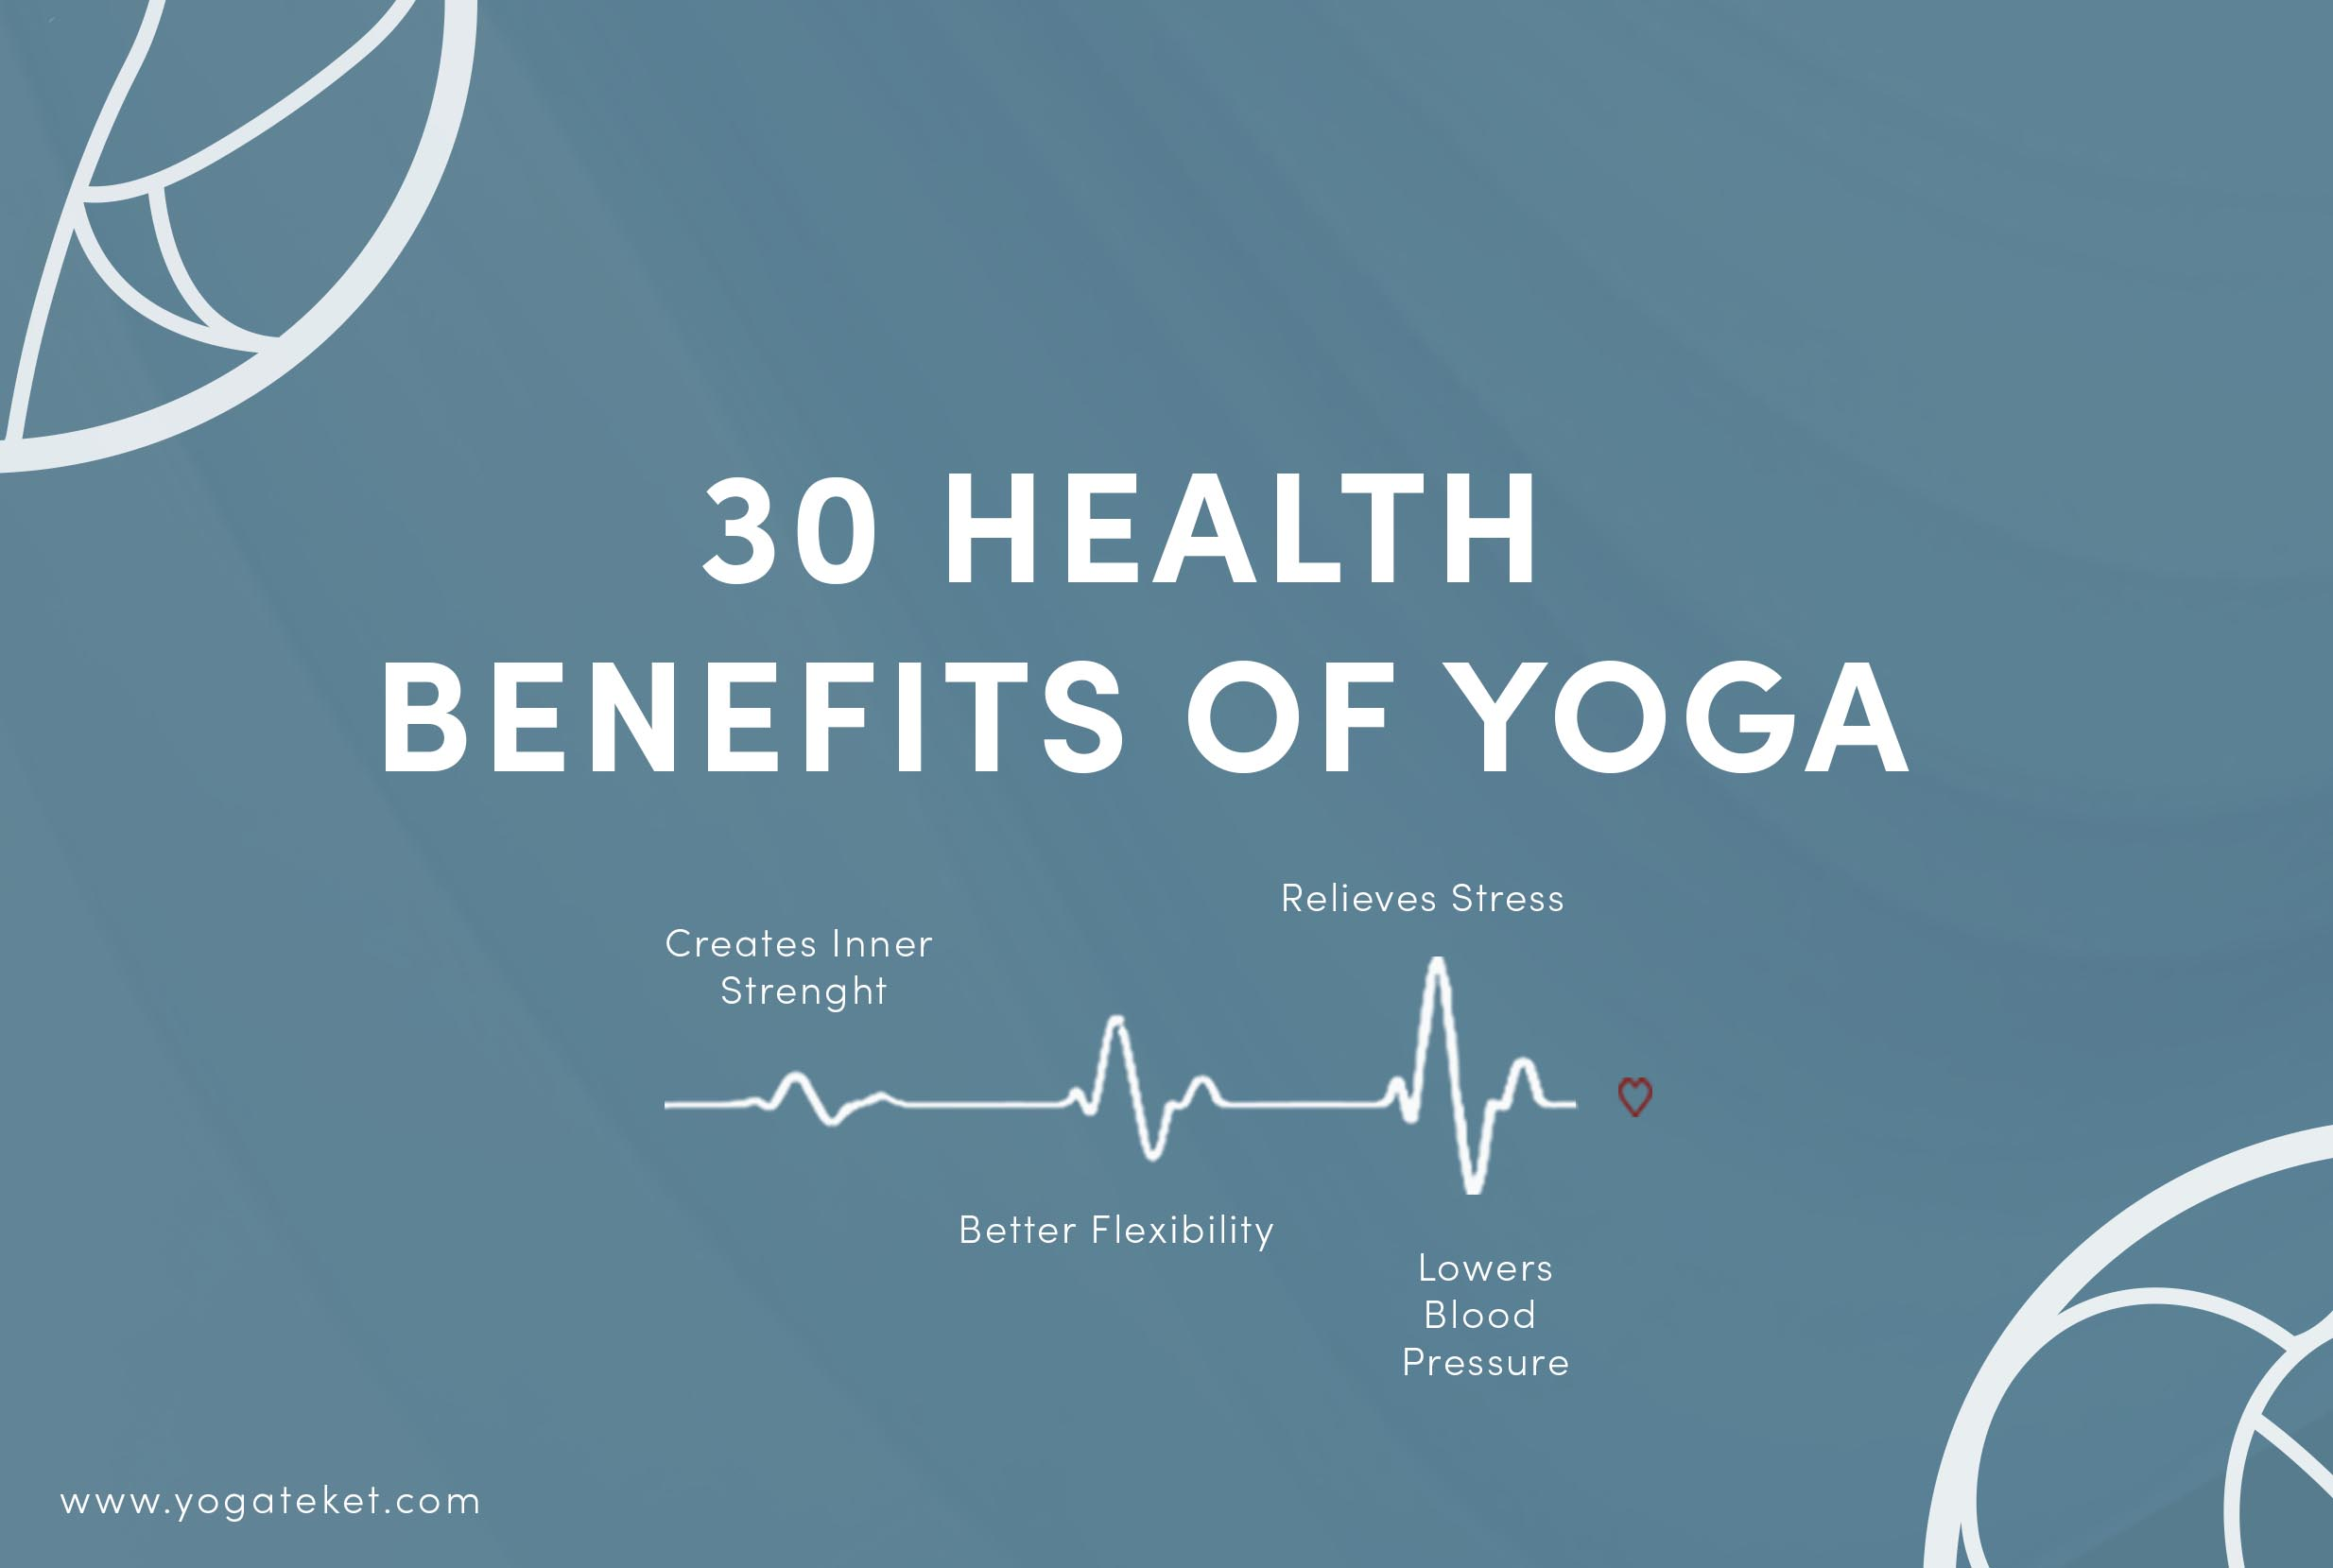 30 Health Benefits of Yoga